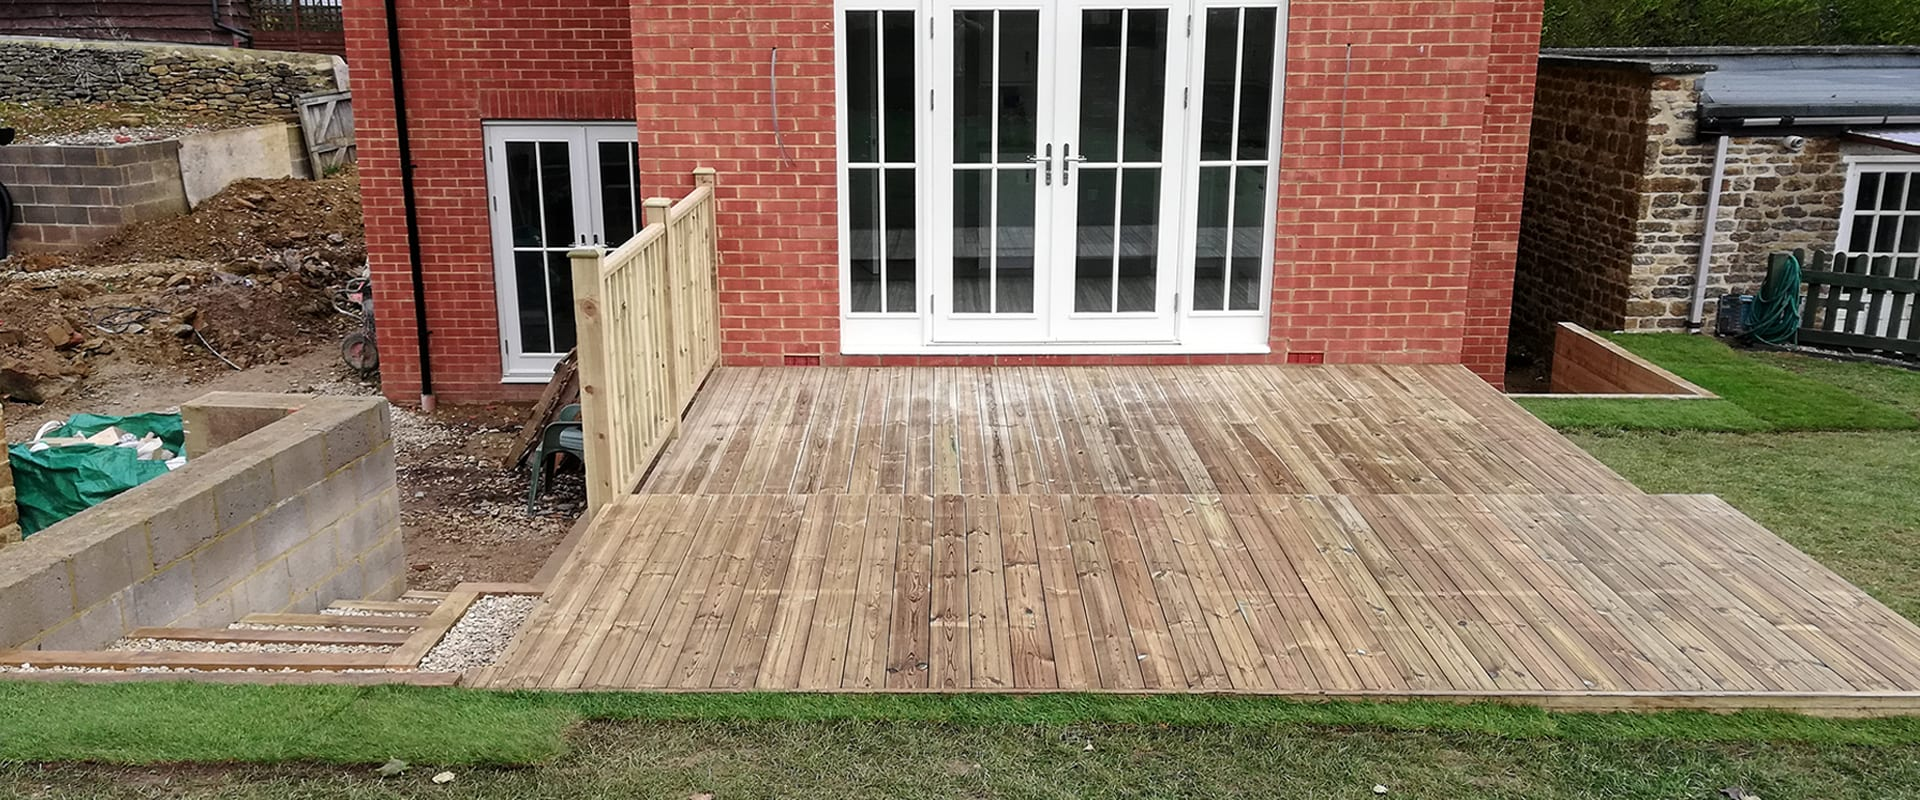 Decking-and-steps.